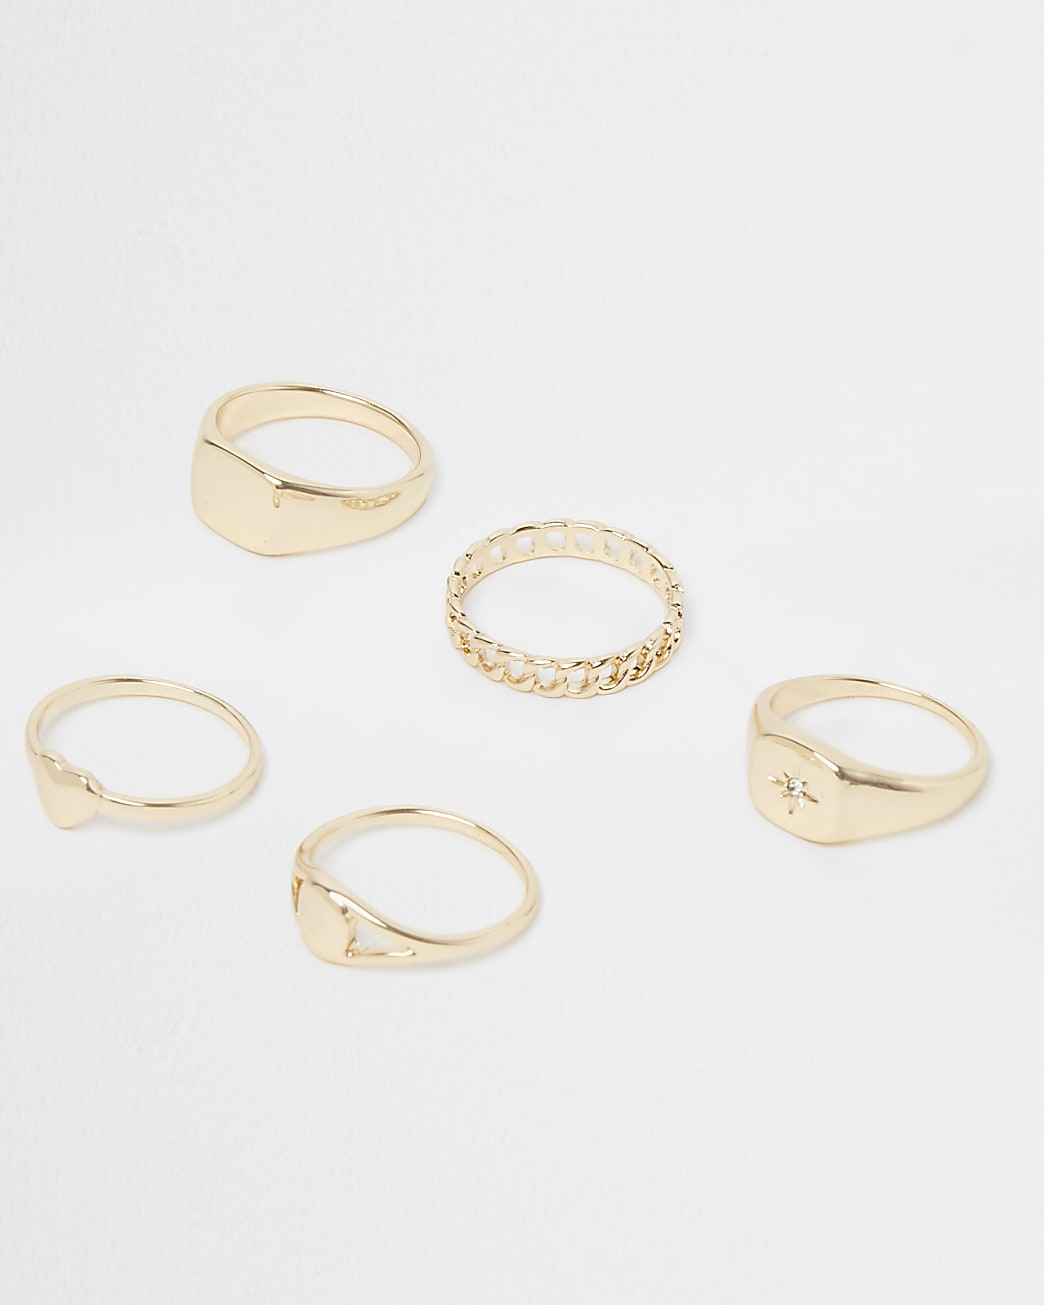 Gold heart and chain ring 5 pack